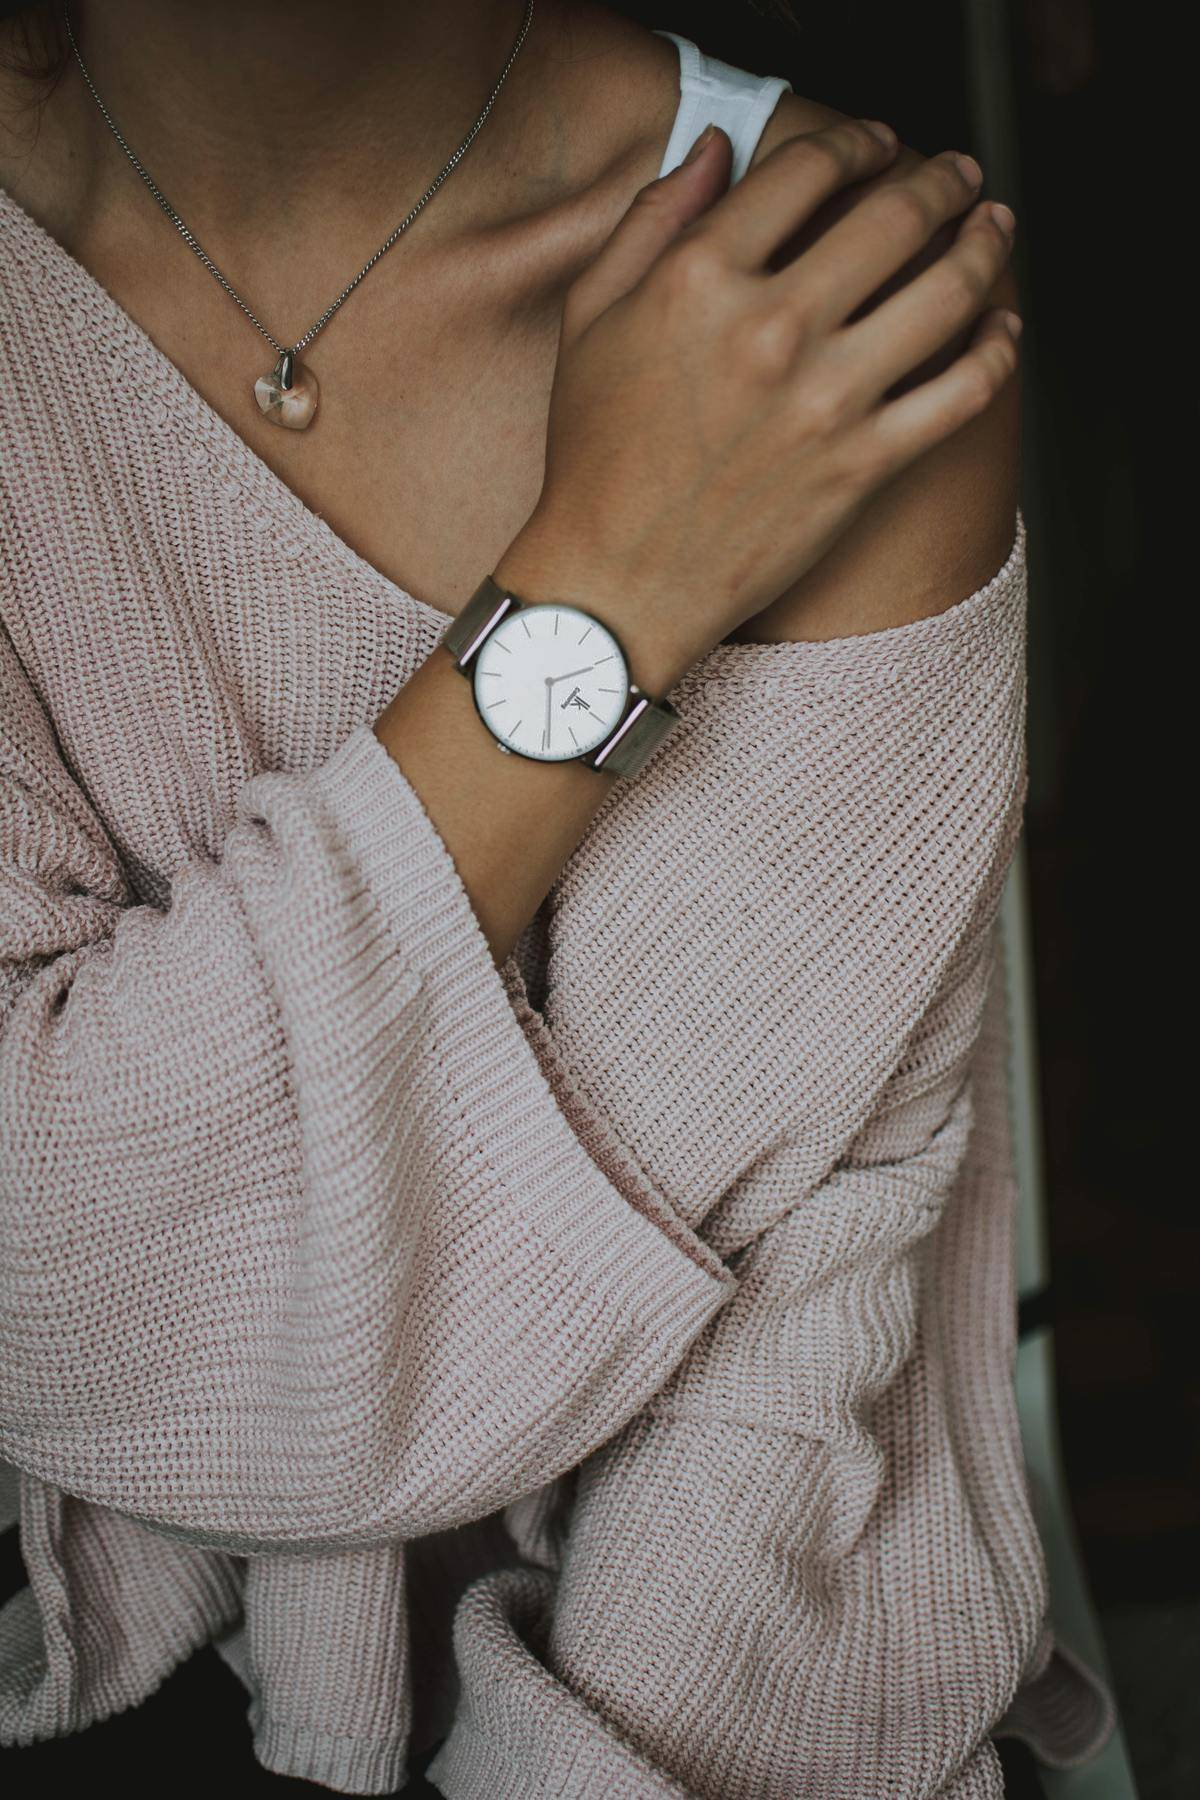 woman holds her shoulder while wearing a watch